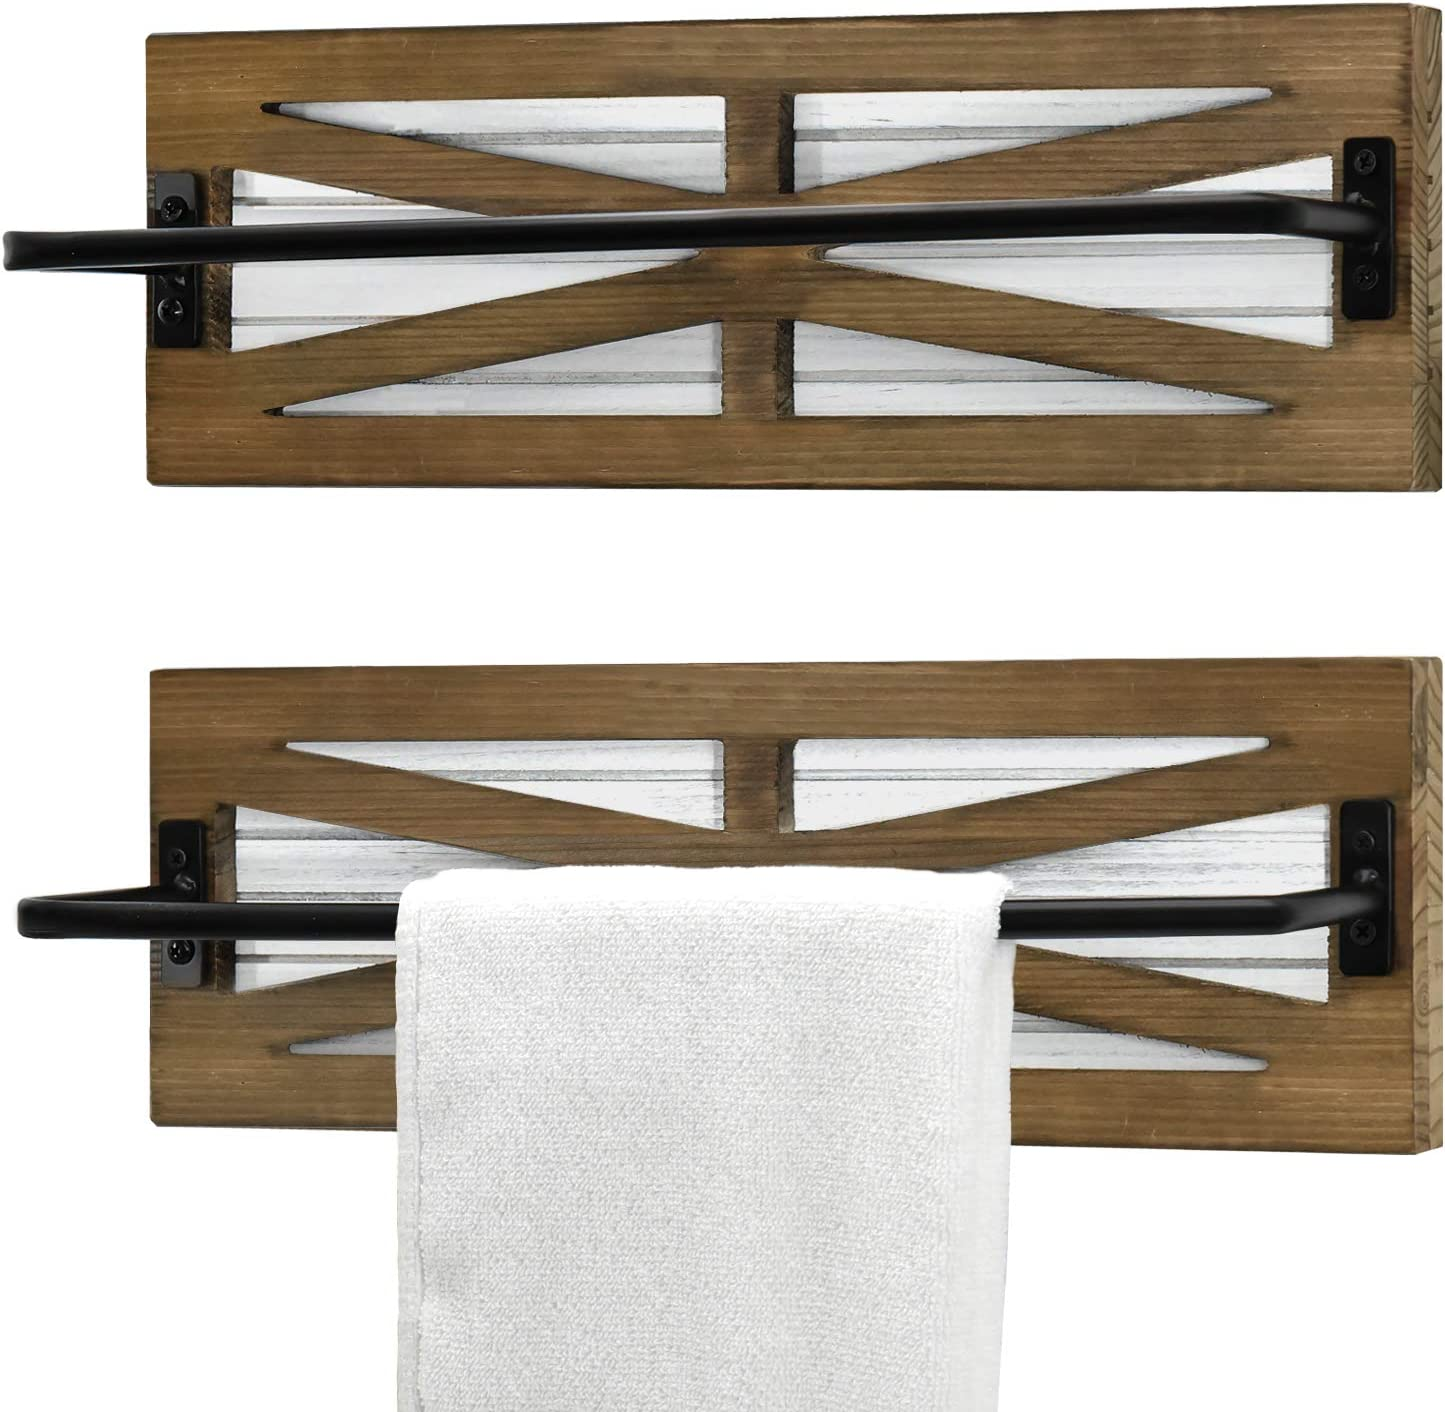 2PCS Farmhouse Towel Rack for Wall Raleigh Mall Rustic Mounted Surprise price Over Bathroom